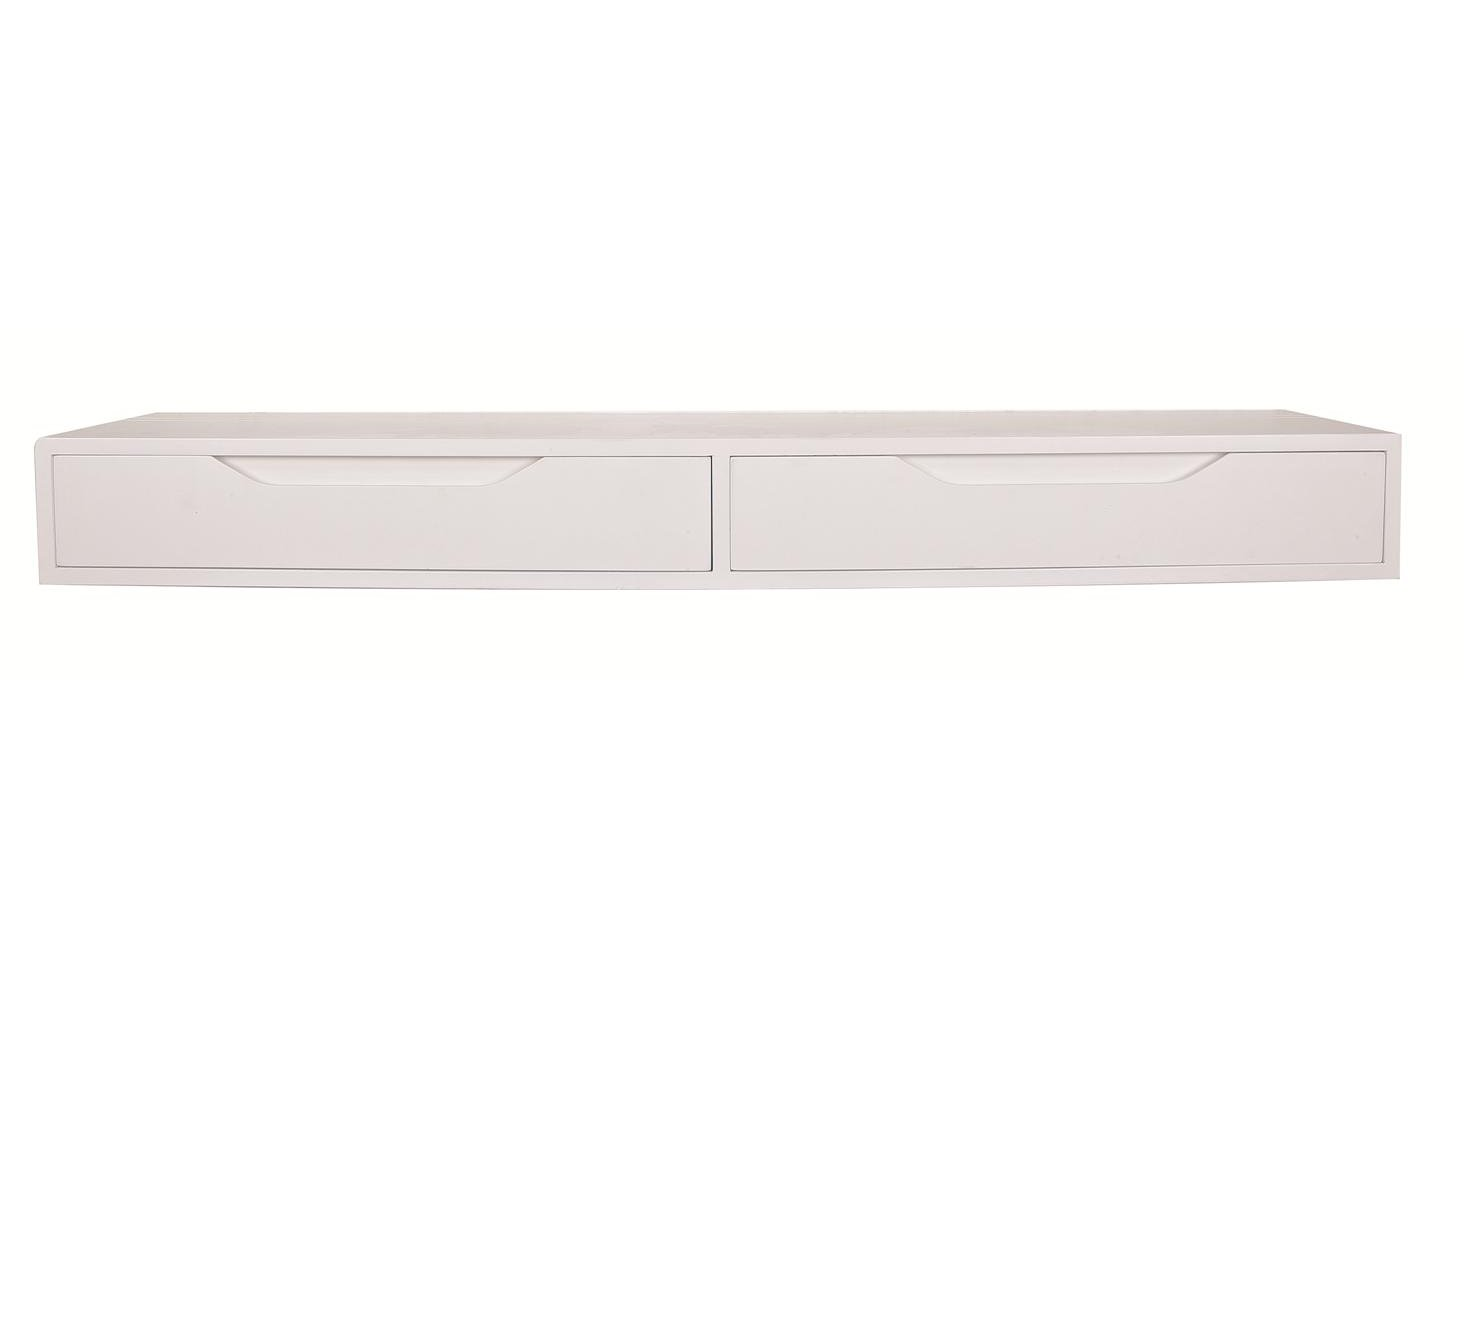 ... Products > STORAGE > All Storage > Wall Shelf with Drawers – White